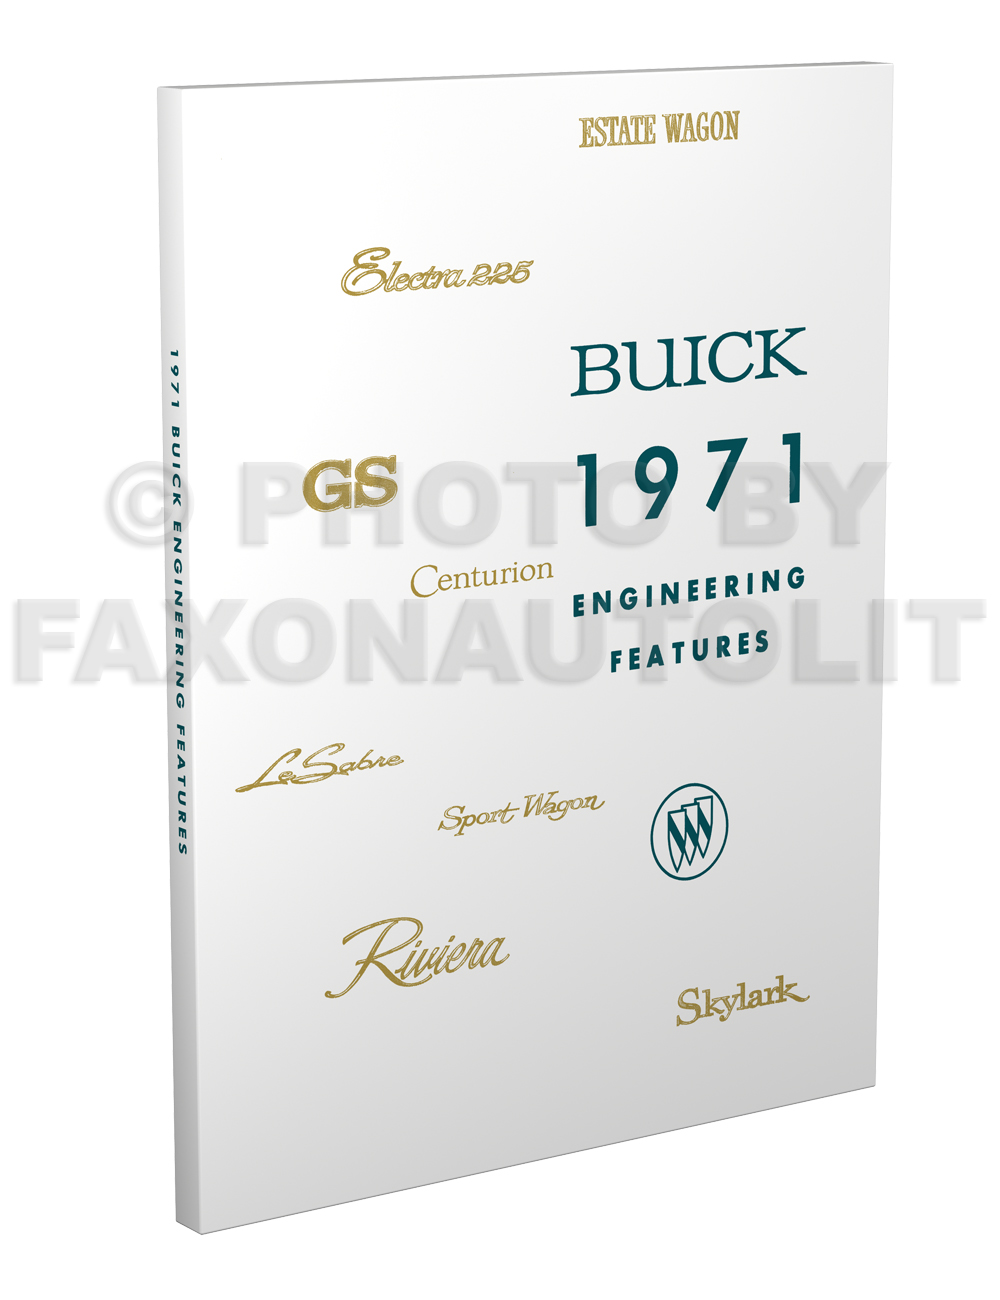 1971 Buick Engineering Features and Specifications Manual Reprint